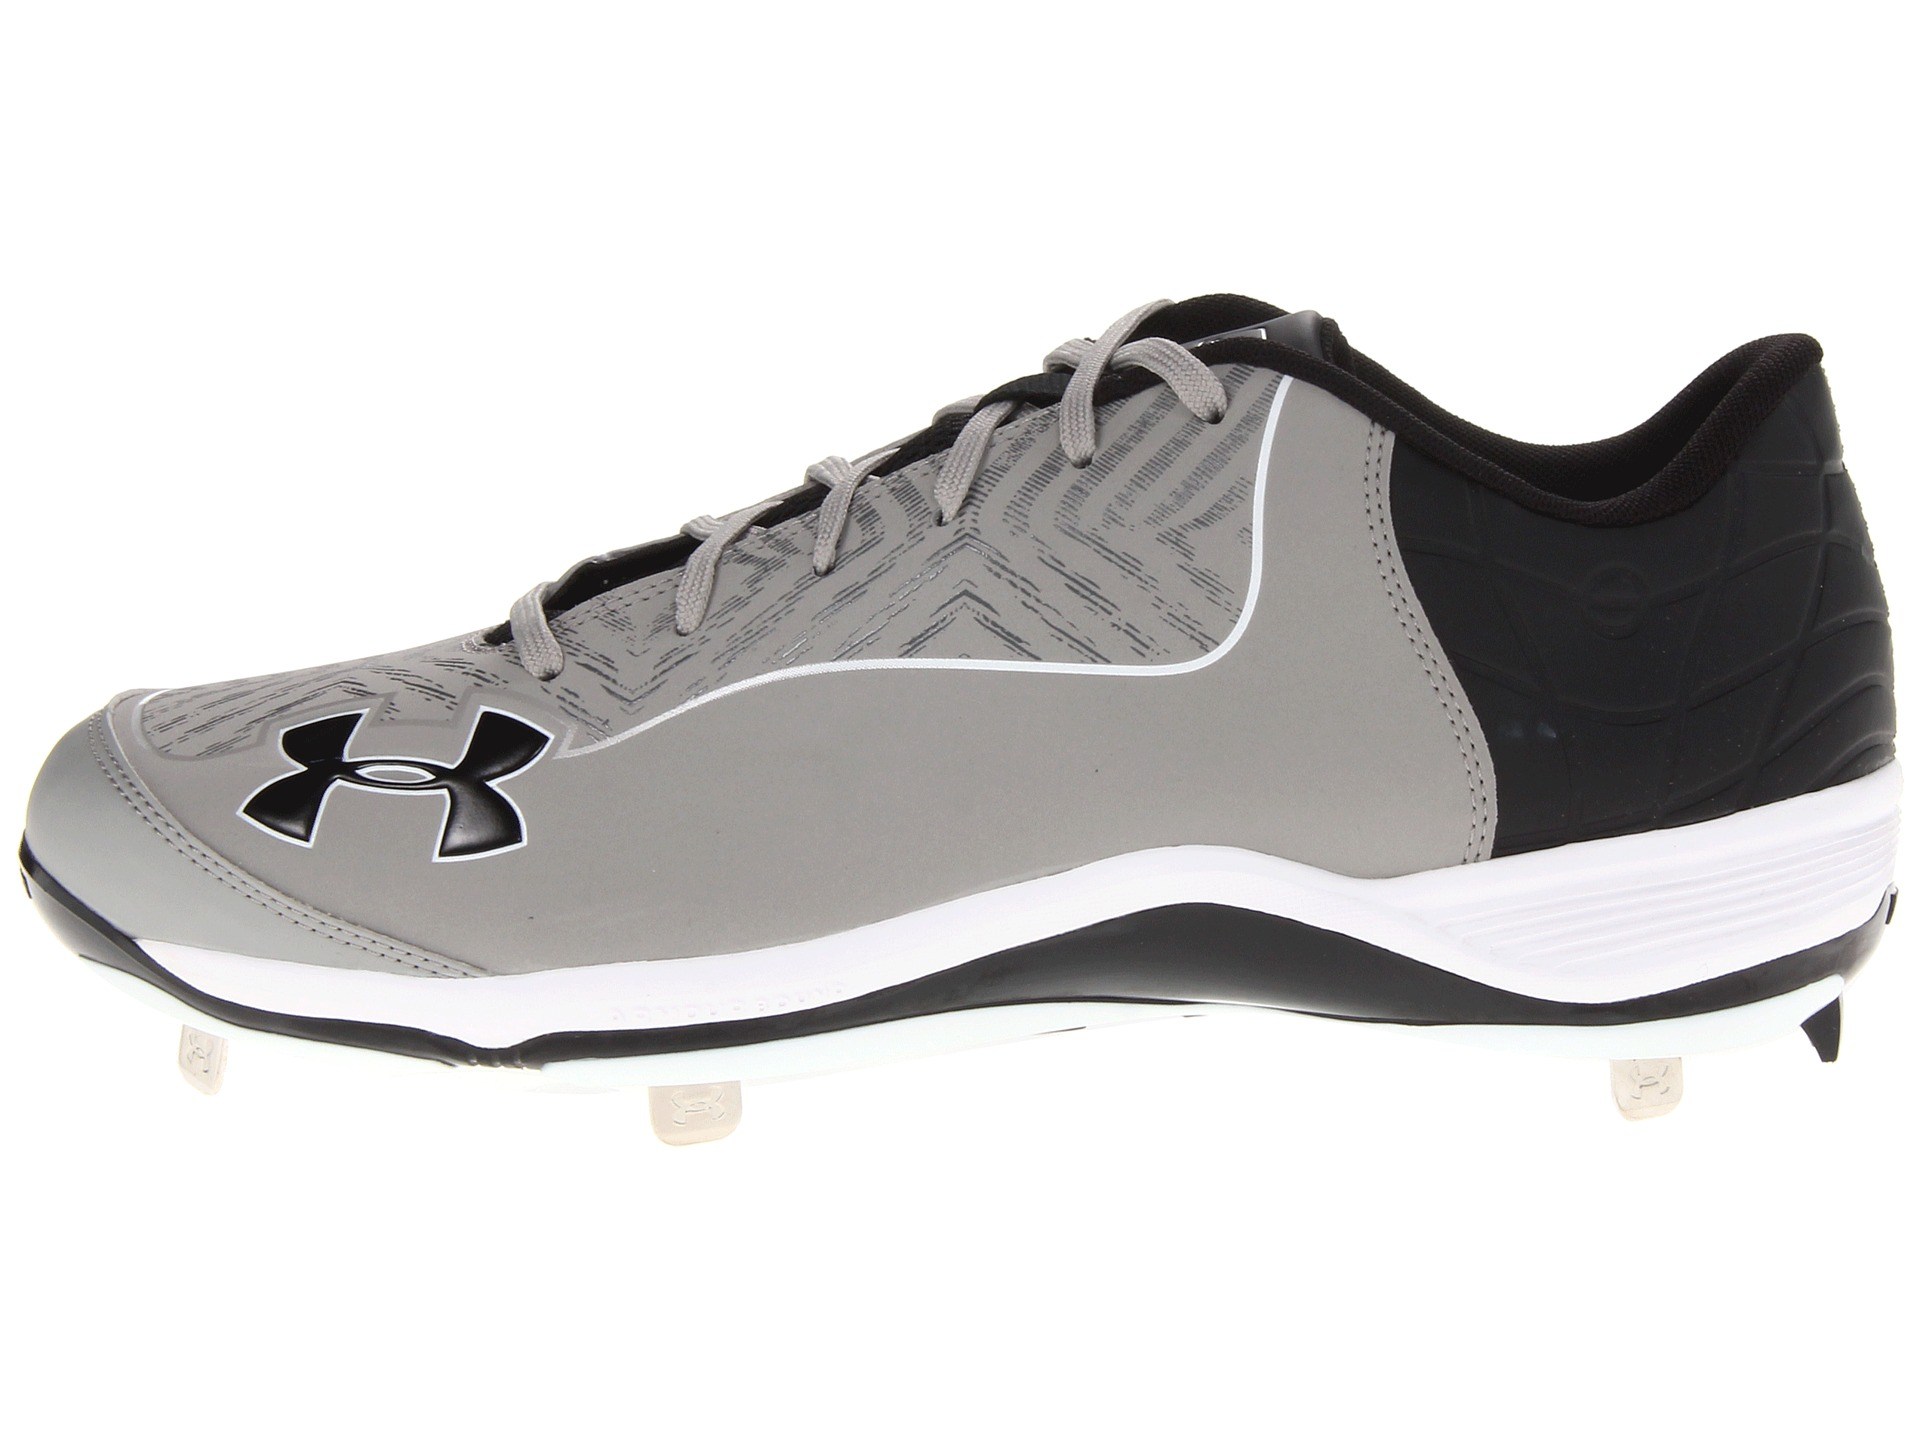 Under Armour Ignite Low ST CC (1246694) - Forelle American Sports Equipment